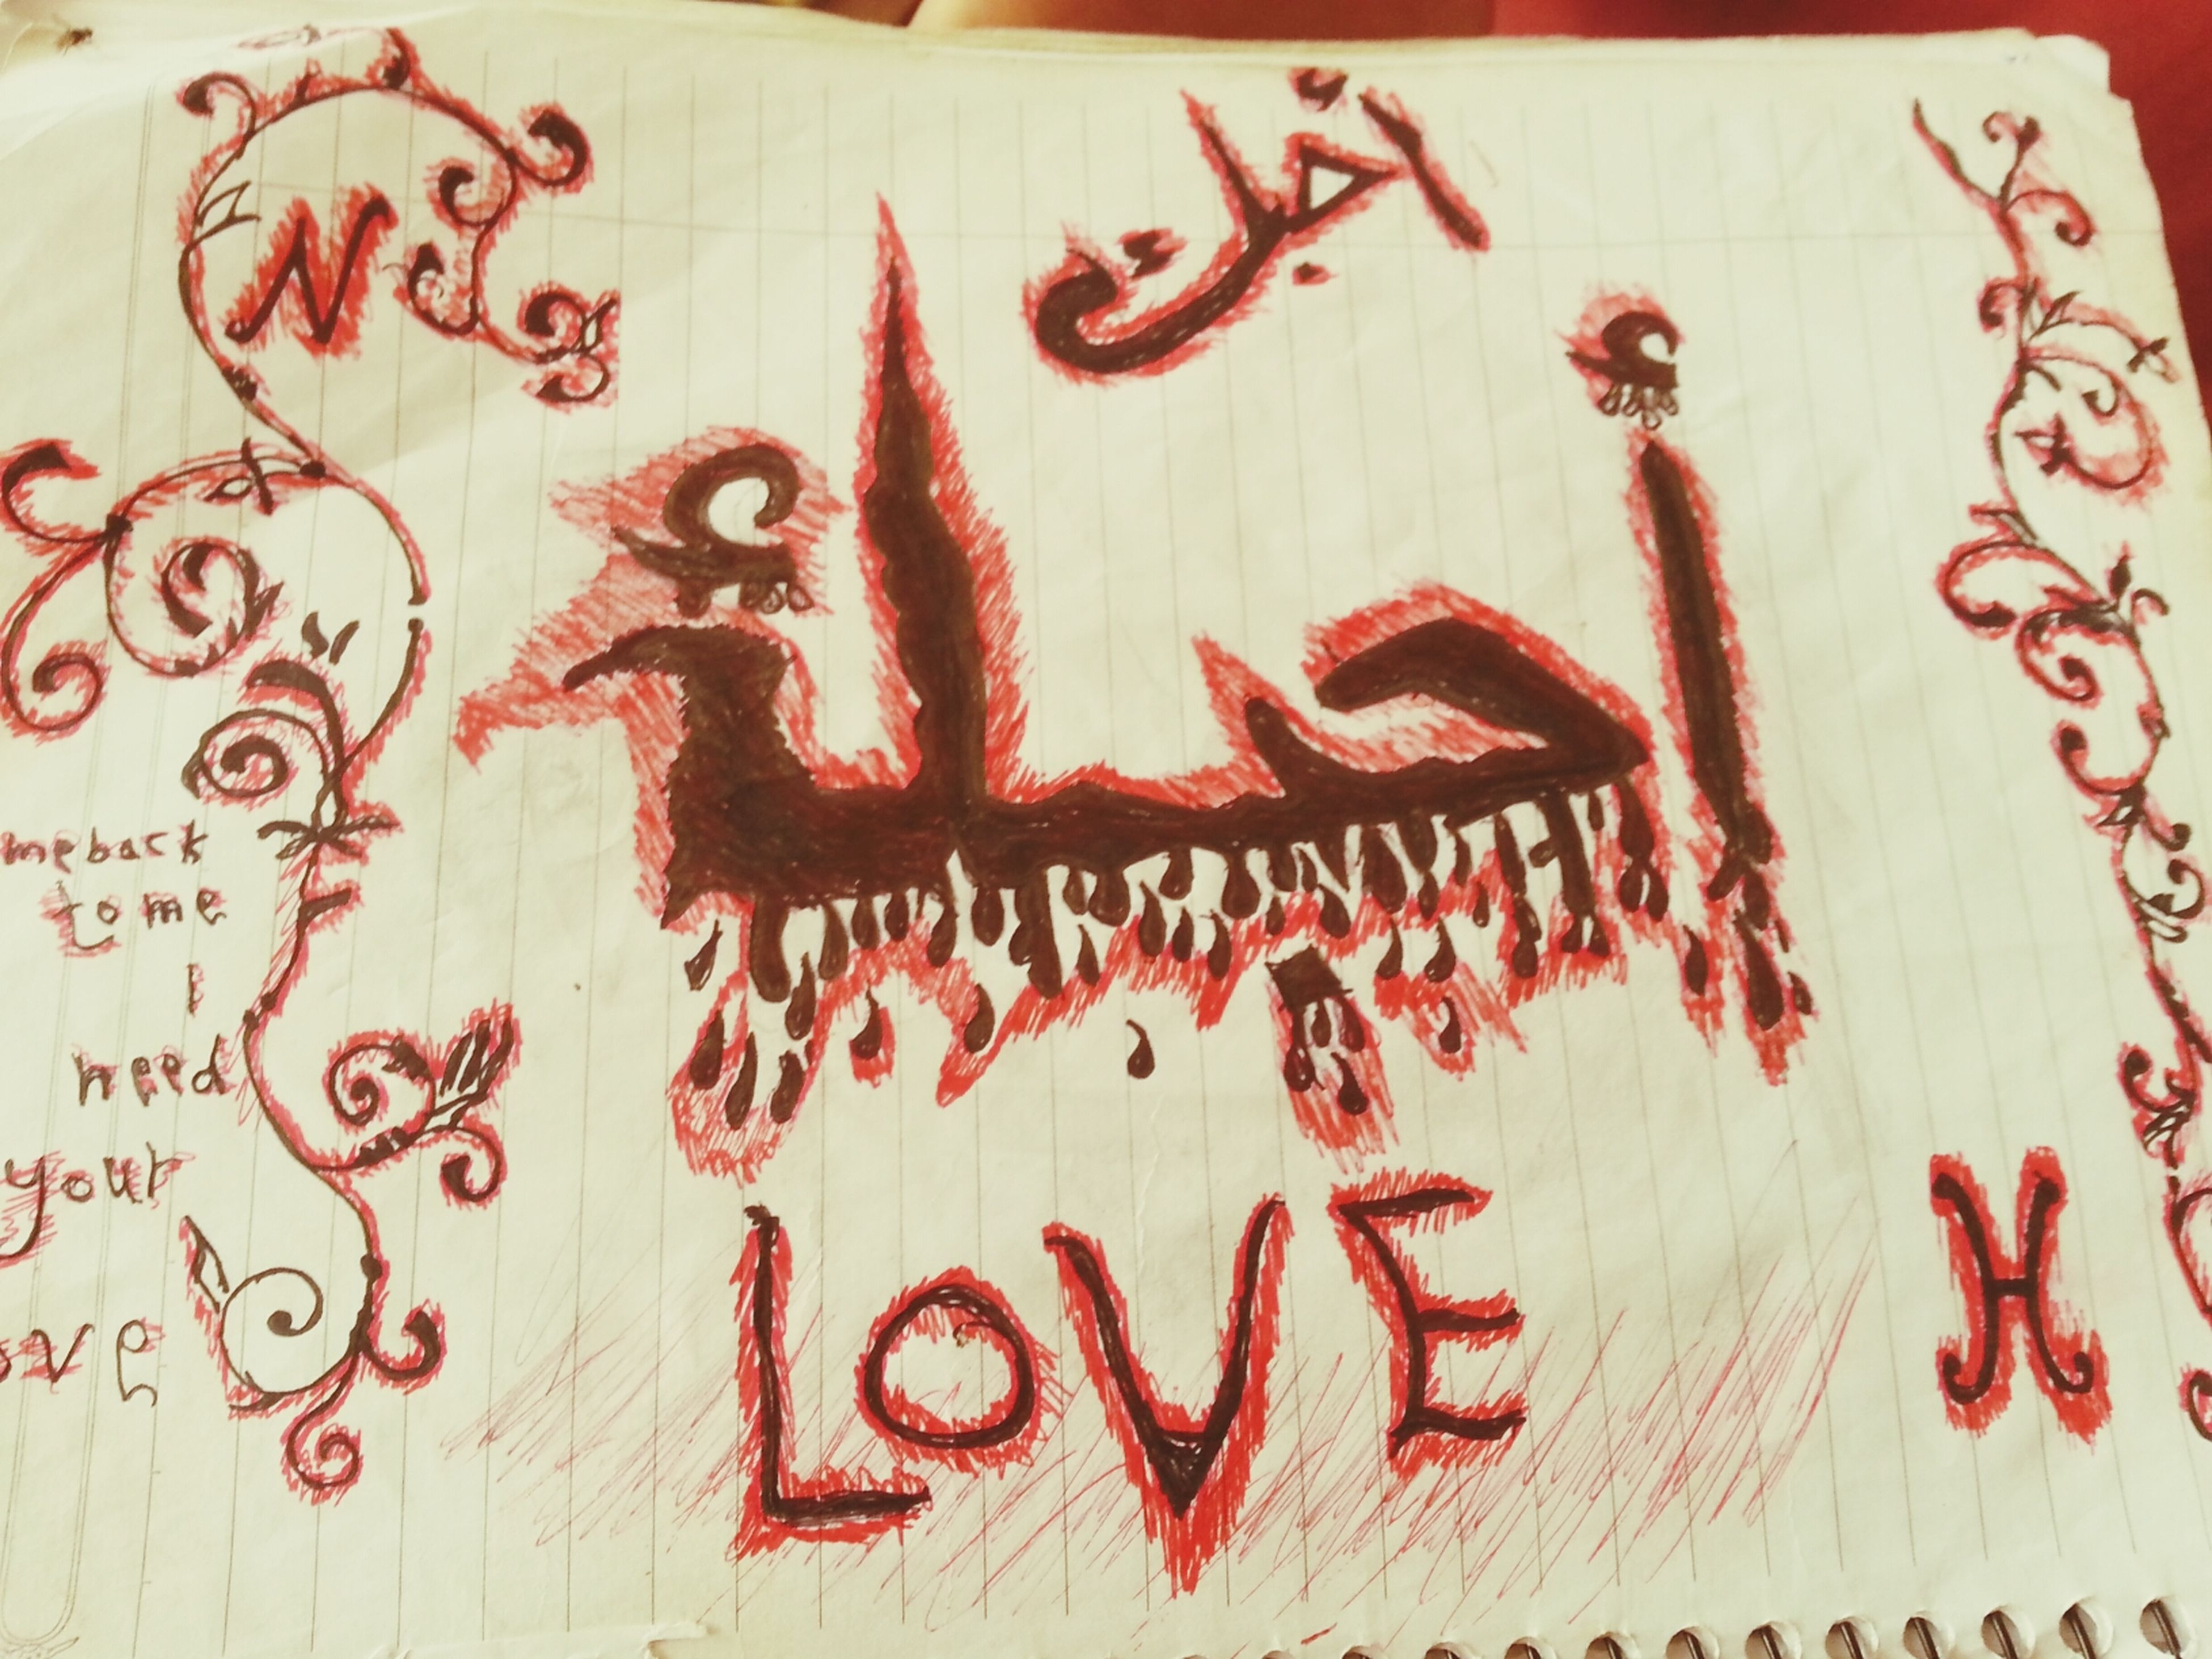 text, creativity, indoors, western script, art, art and craft, communication, red, close-up, wall - building feature, heart shape, love, paper, graffiti, wall, animal representation, ideas, no people, still life, design